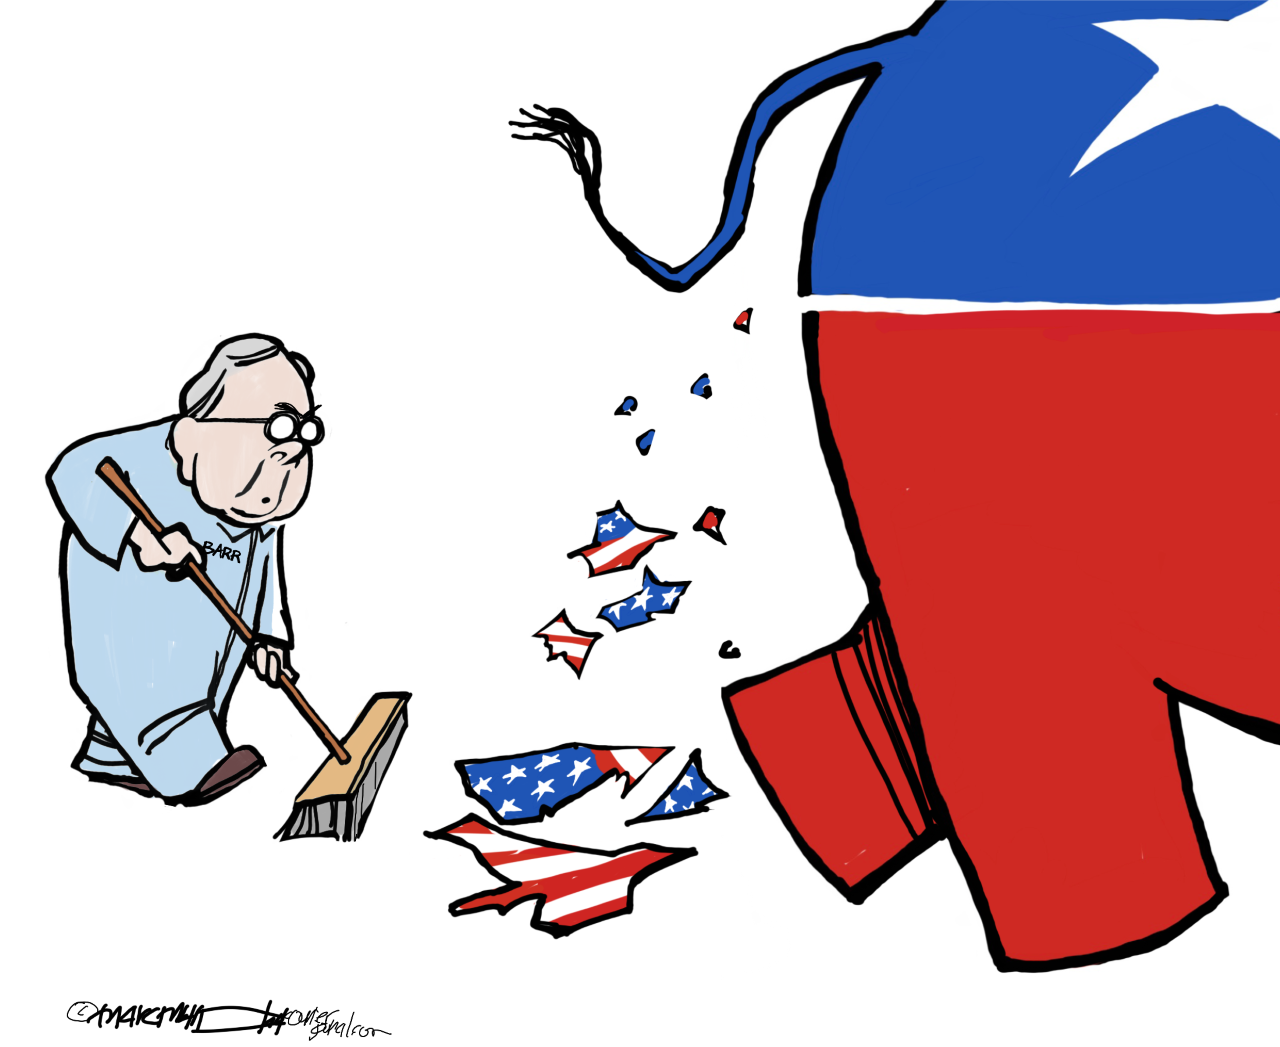 The /cartoonist's homepage, https://www.courier-journal.com